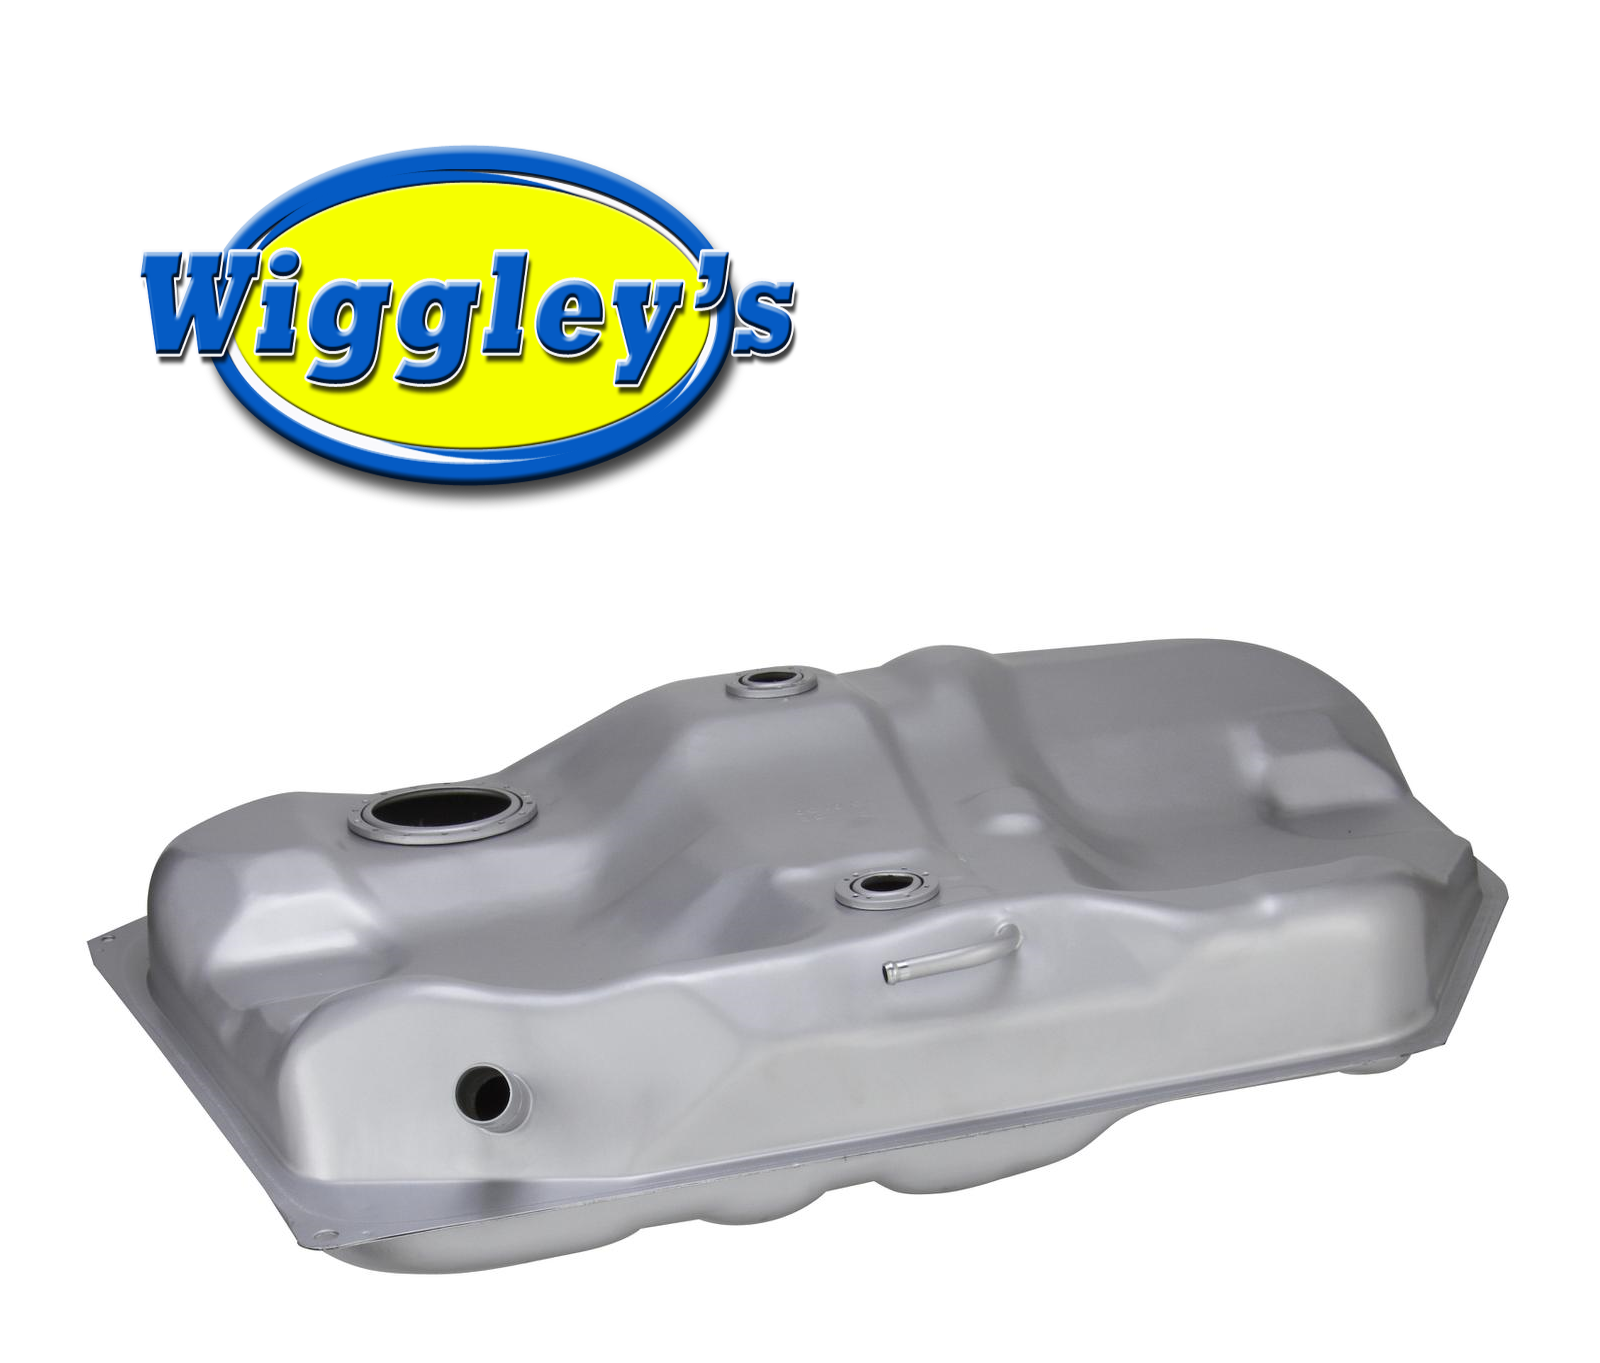 FUEL TANK TO14A, ITO14A FITS 93 94 95 96 97 TOYOTA COROLLA GEO PRIZM